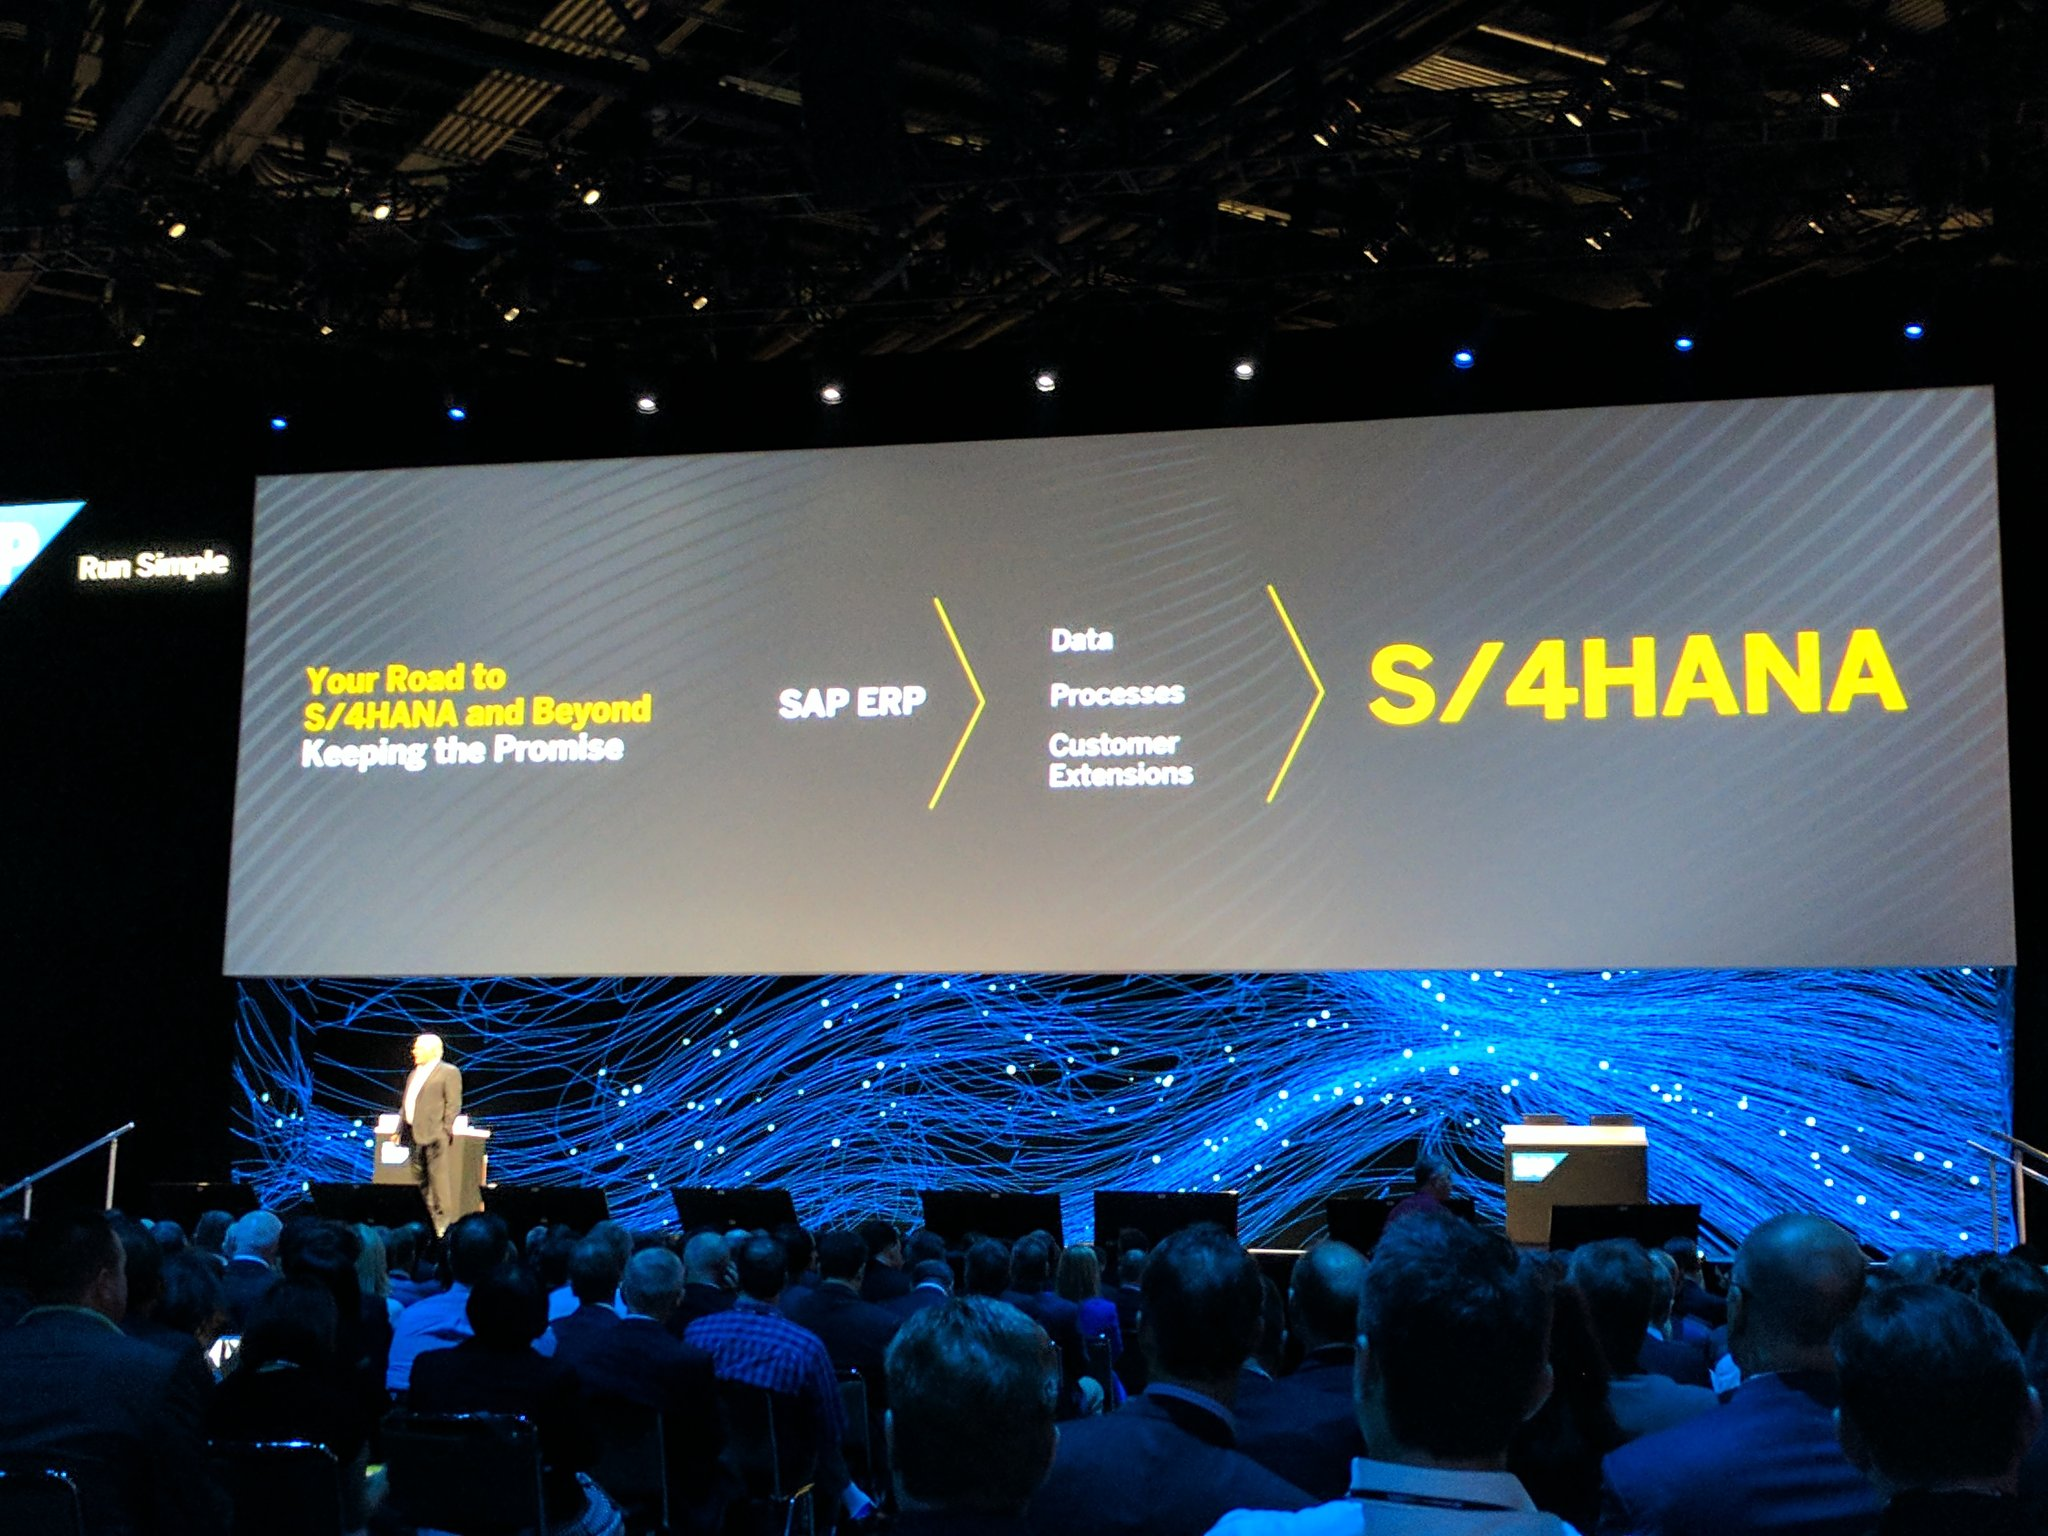 Plattner - I will only talk #S4HANA #Cloud #SAPPHIRENOW https://t.co/vSaRS0fMlg